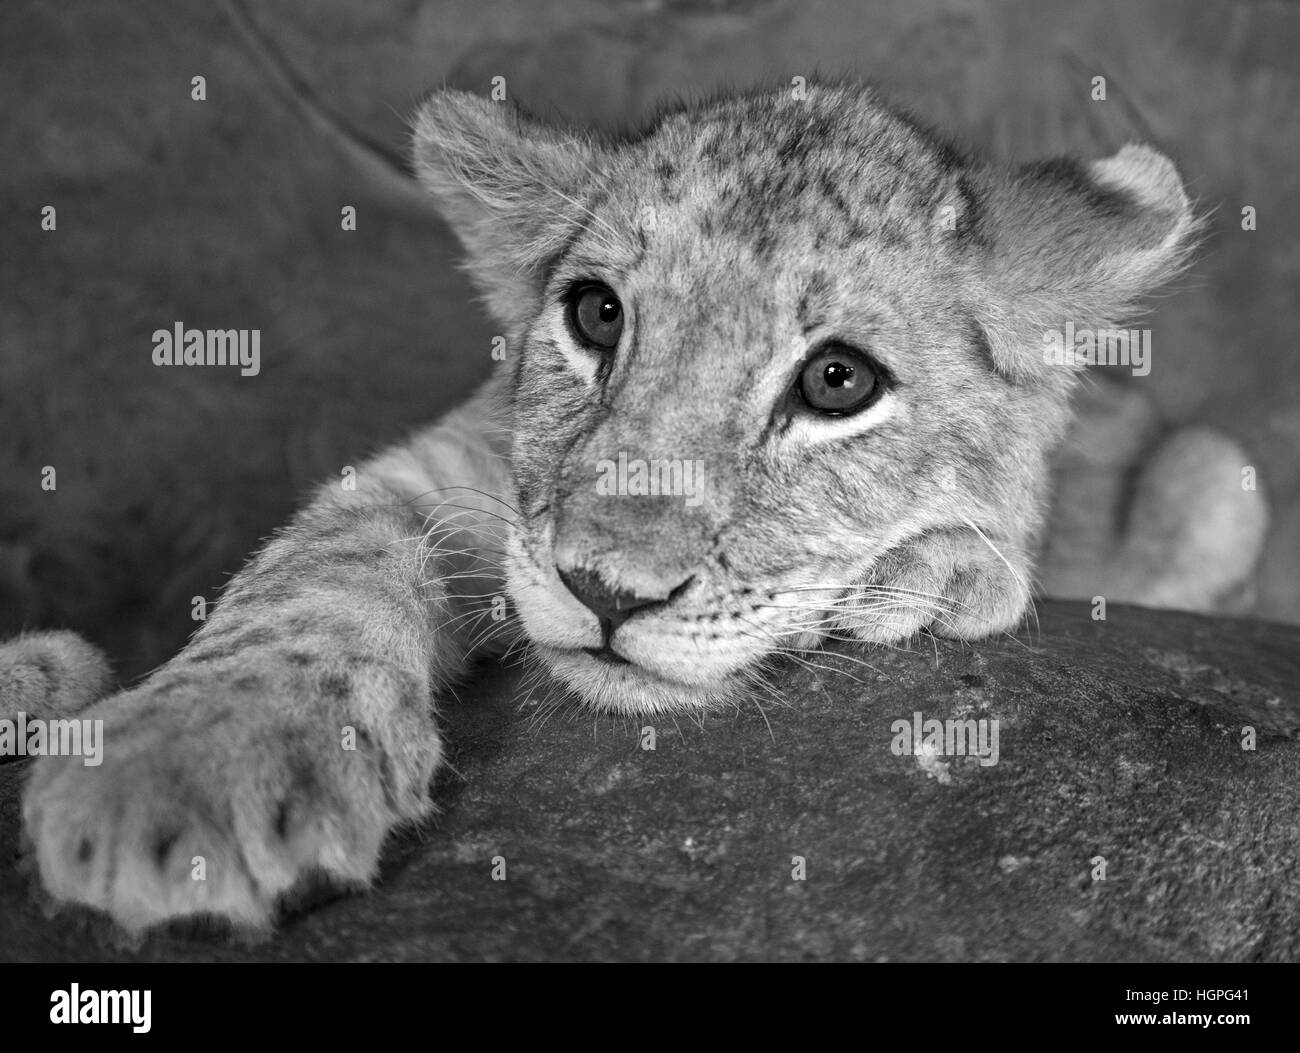 Baby lion closeup black and white - Stock Image